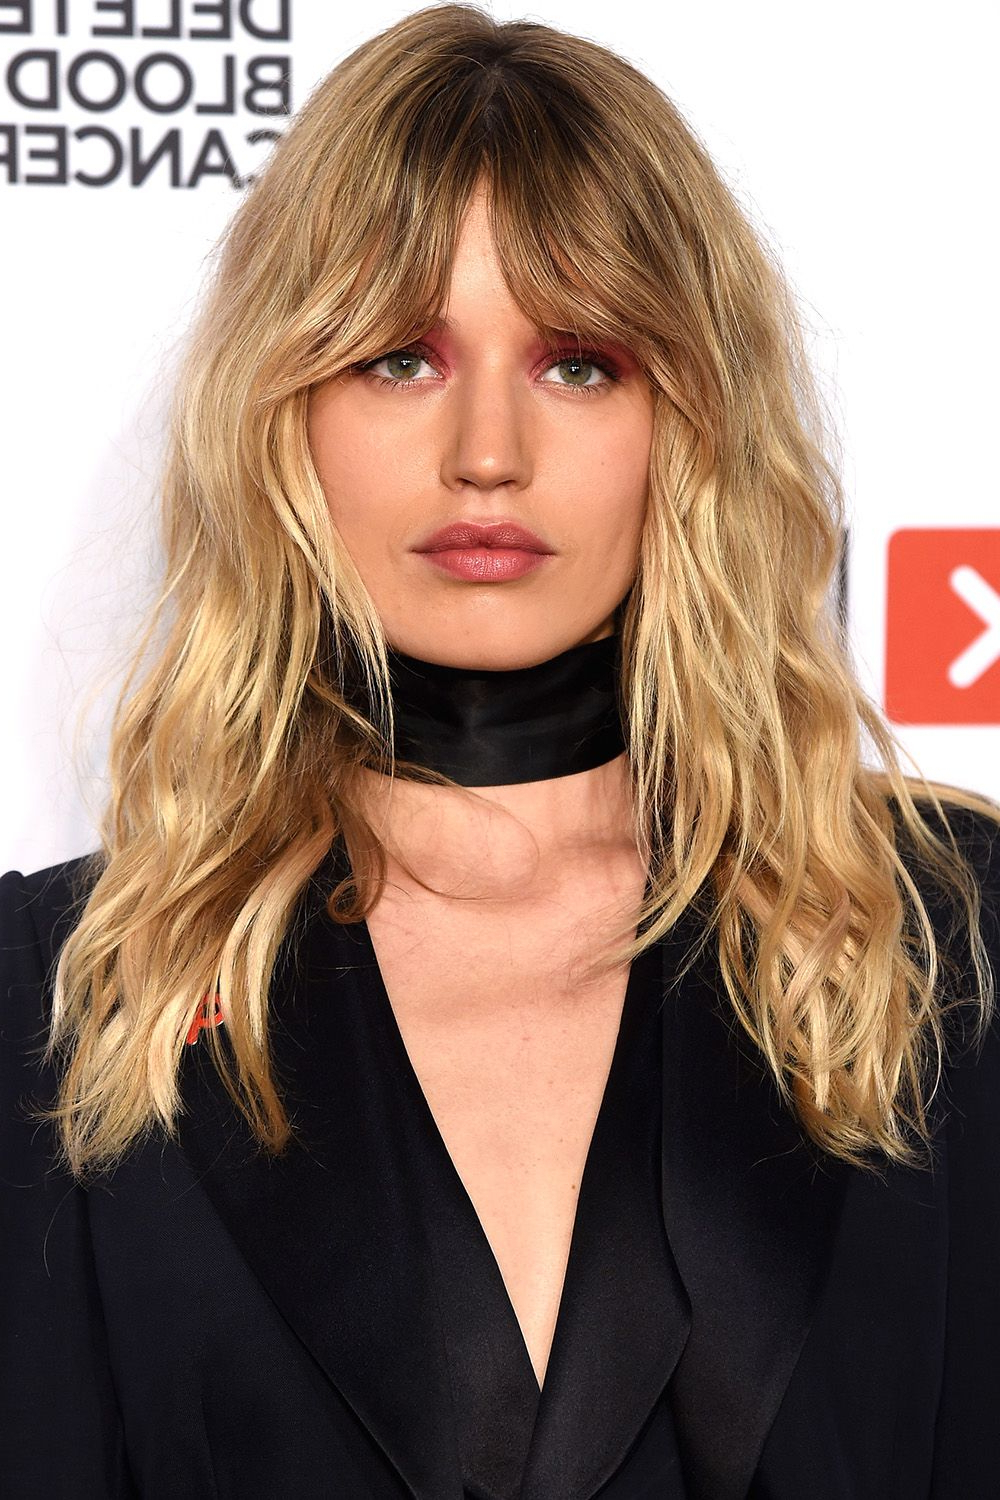 40 Best Medium Hairstyles – Celebrities With Shoulder Length Haircuts In Preferred Medium Haircuts Styles With Bangs (View 6 of 20)